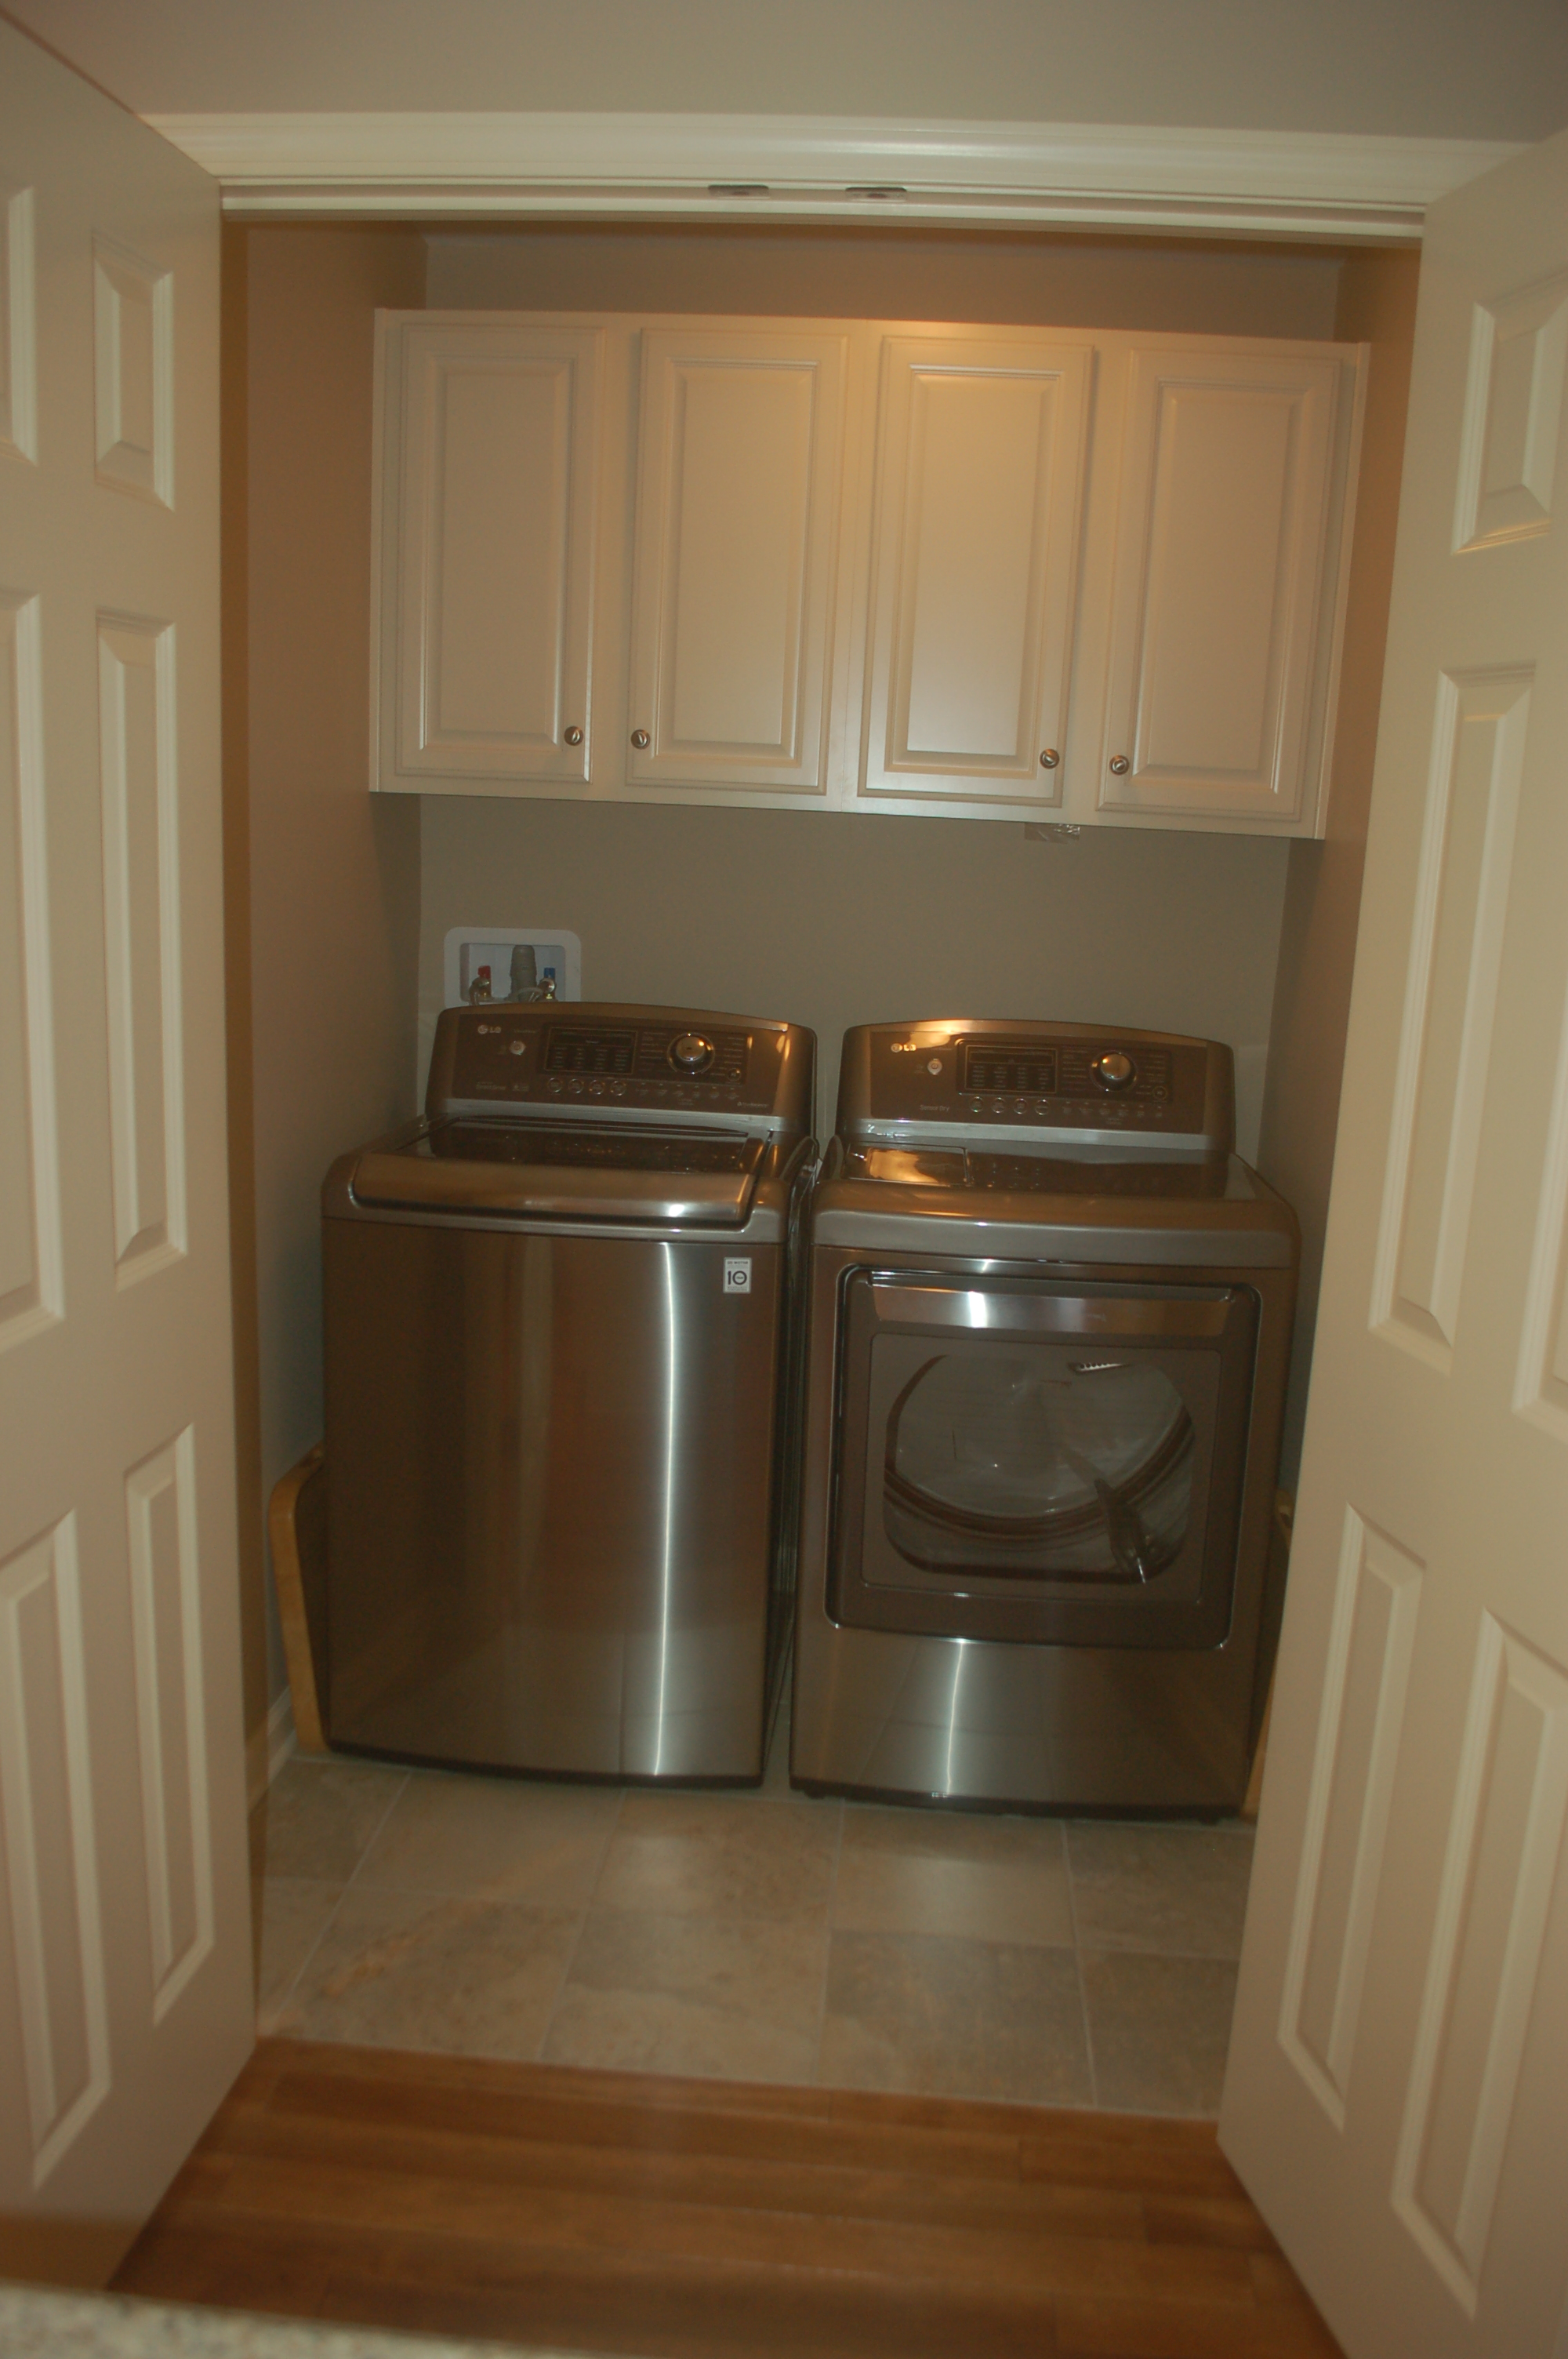 Laundry Room Cabinets and Doors